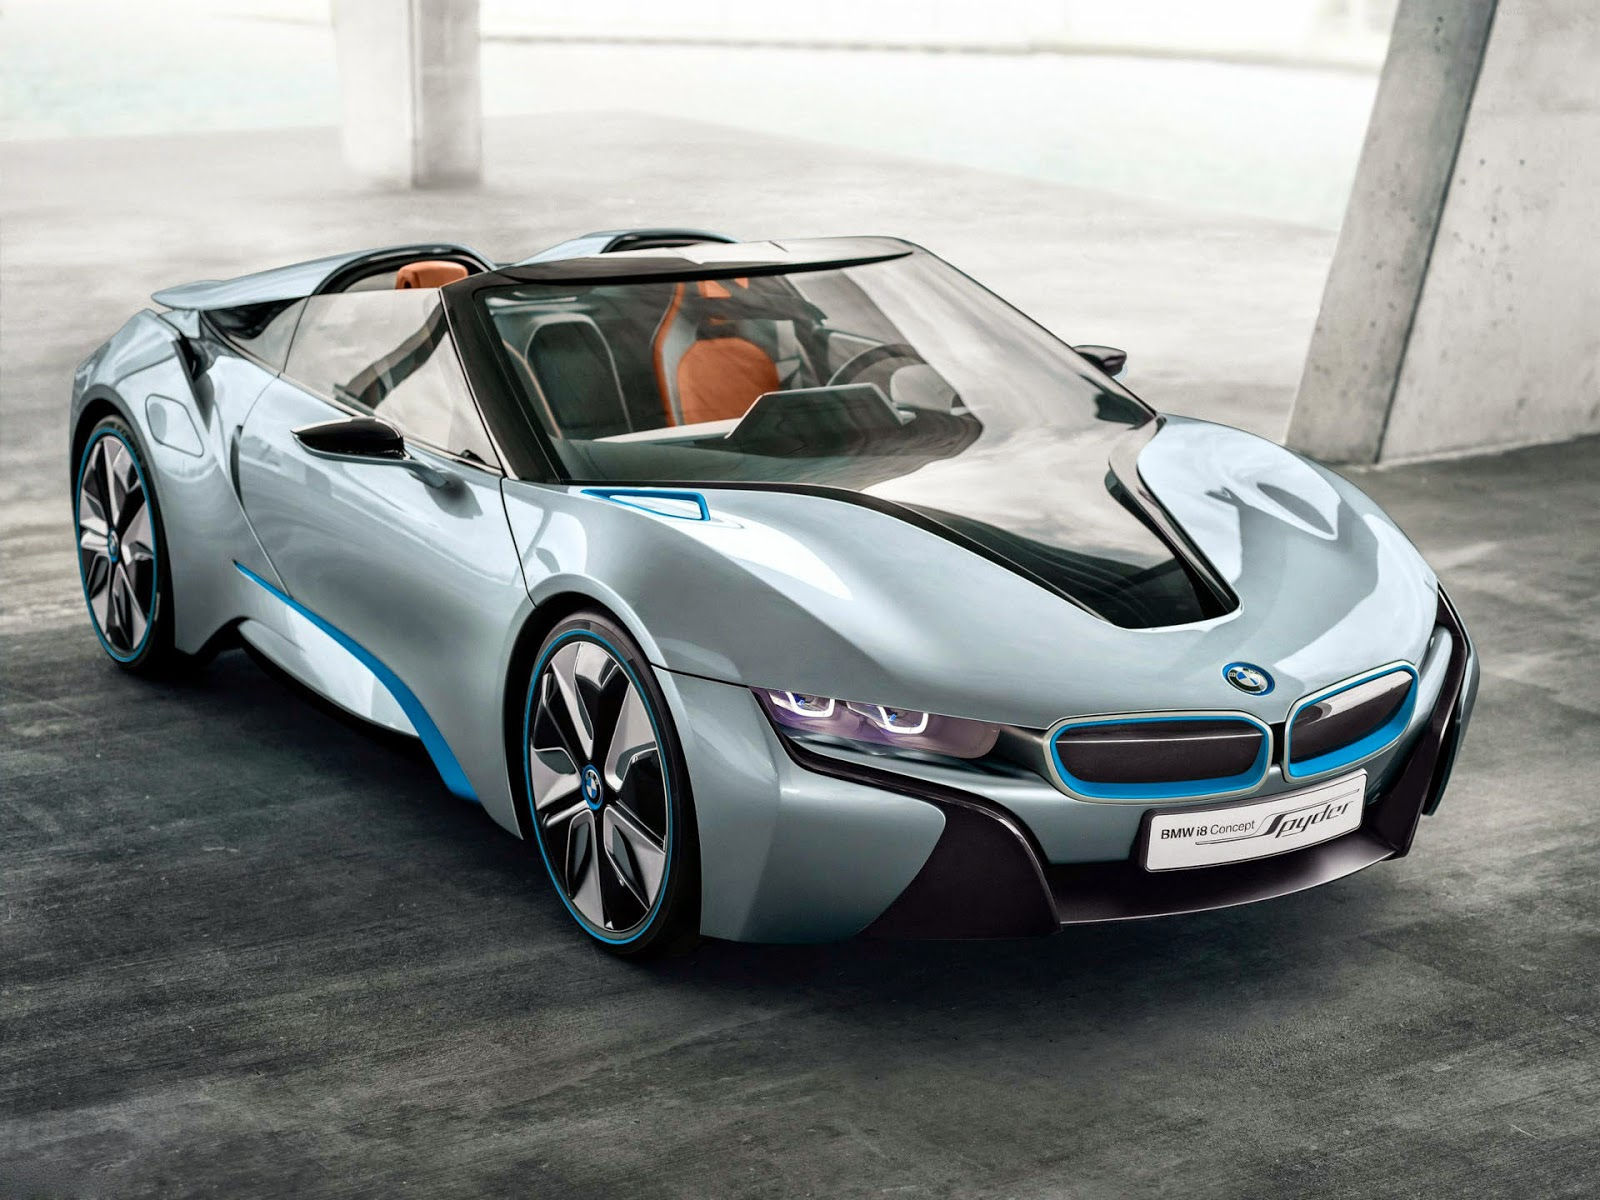 BMW i8 spyder new latest car model wallpaper free download